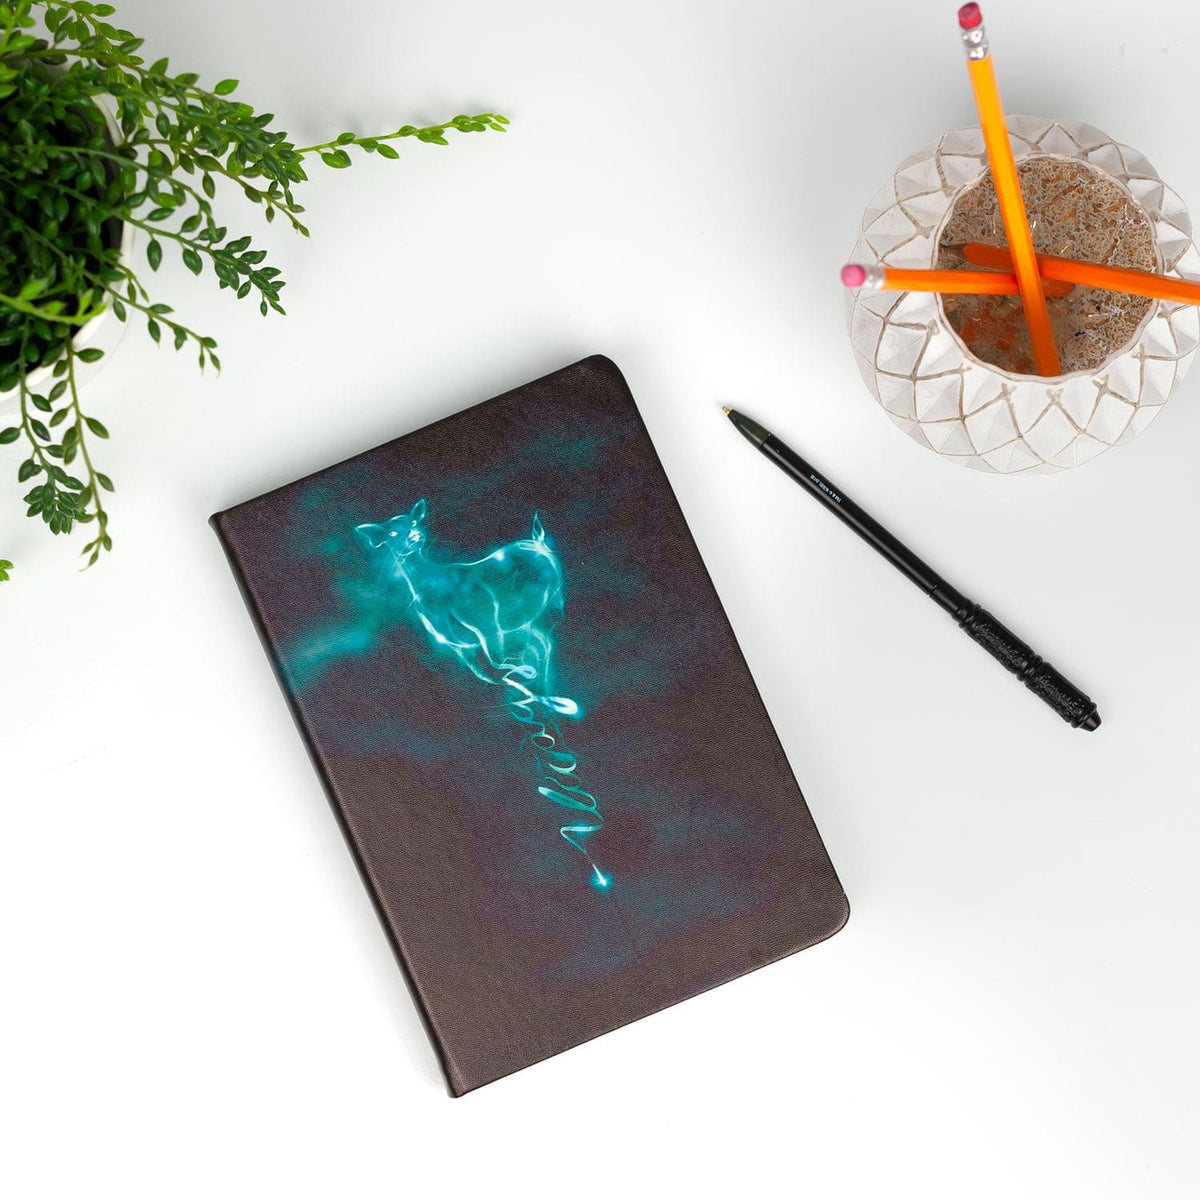 Harry Potter Severus Snape Patronus Notebook & Wand Pen Set | 192 Blank Pages